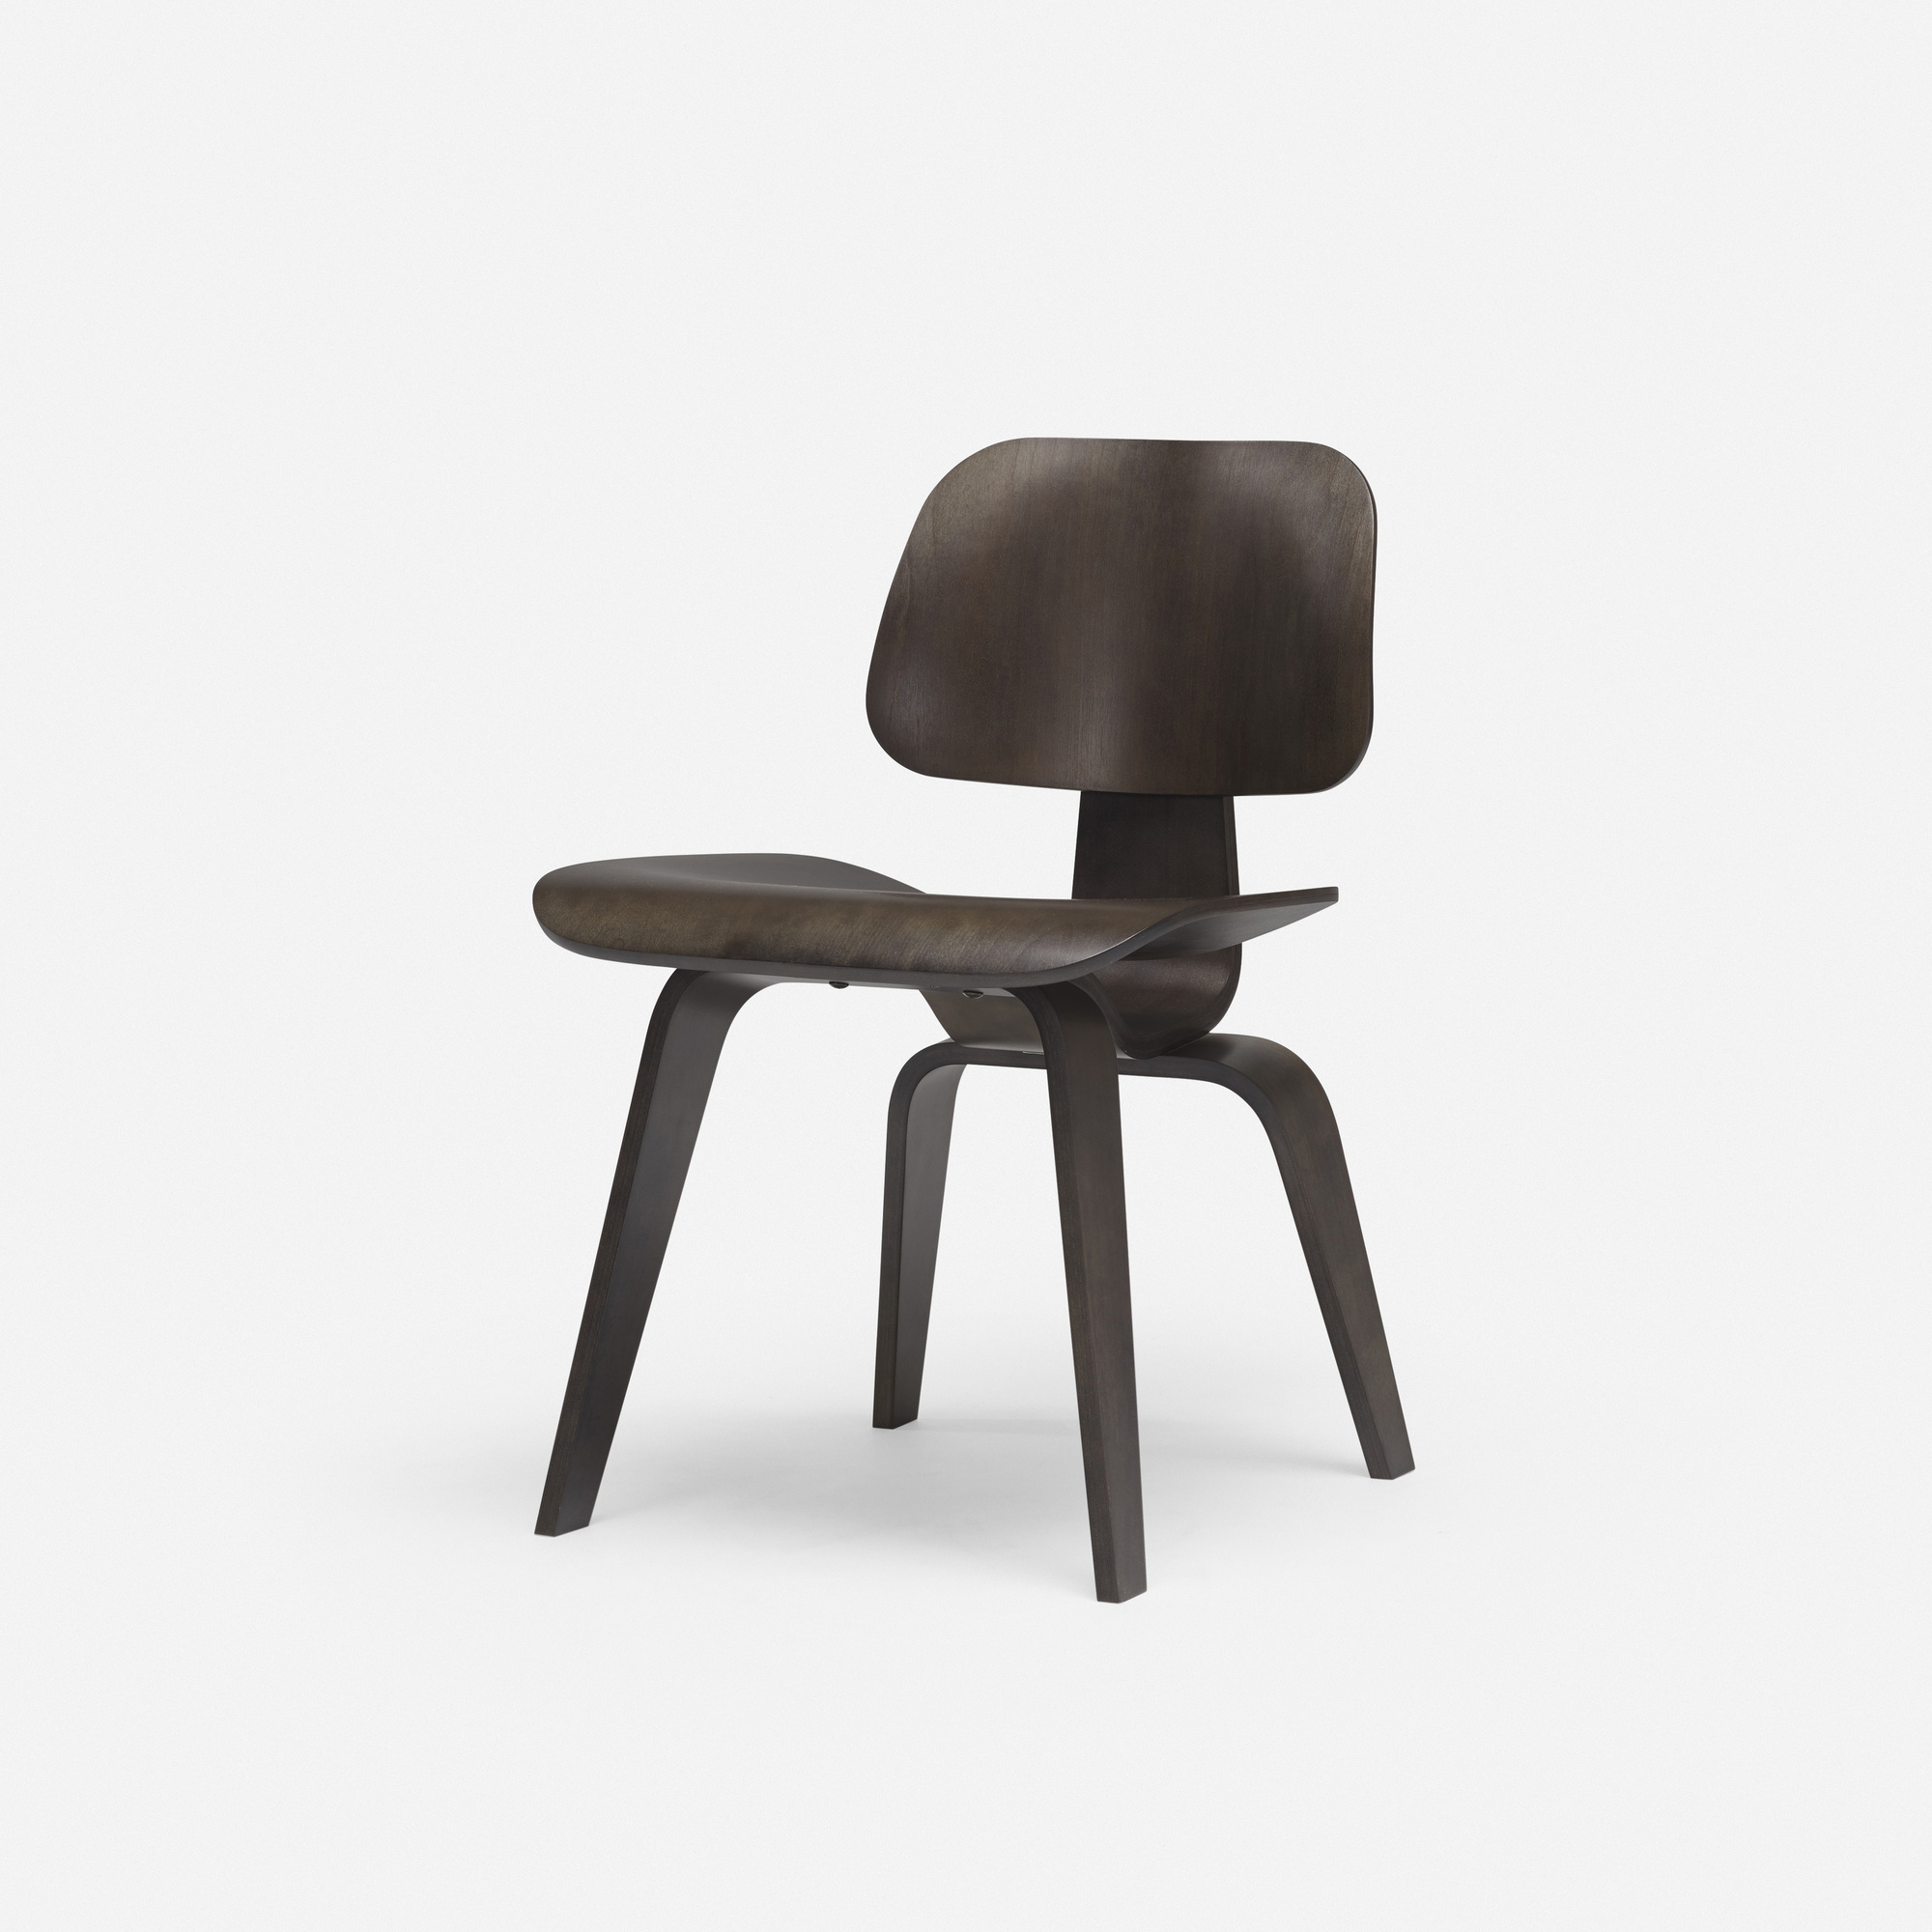 270: Charles and Ray Eames / DCW (2 of 4)